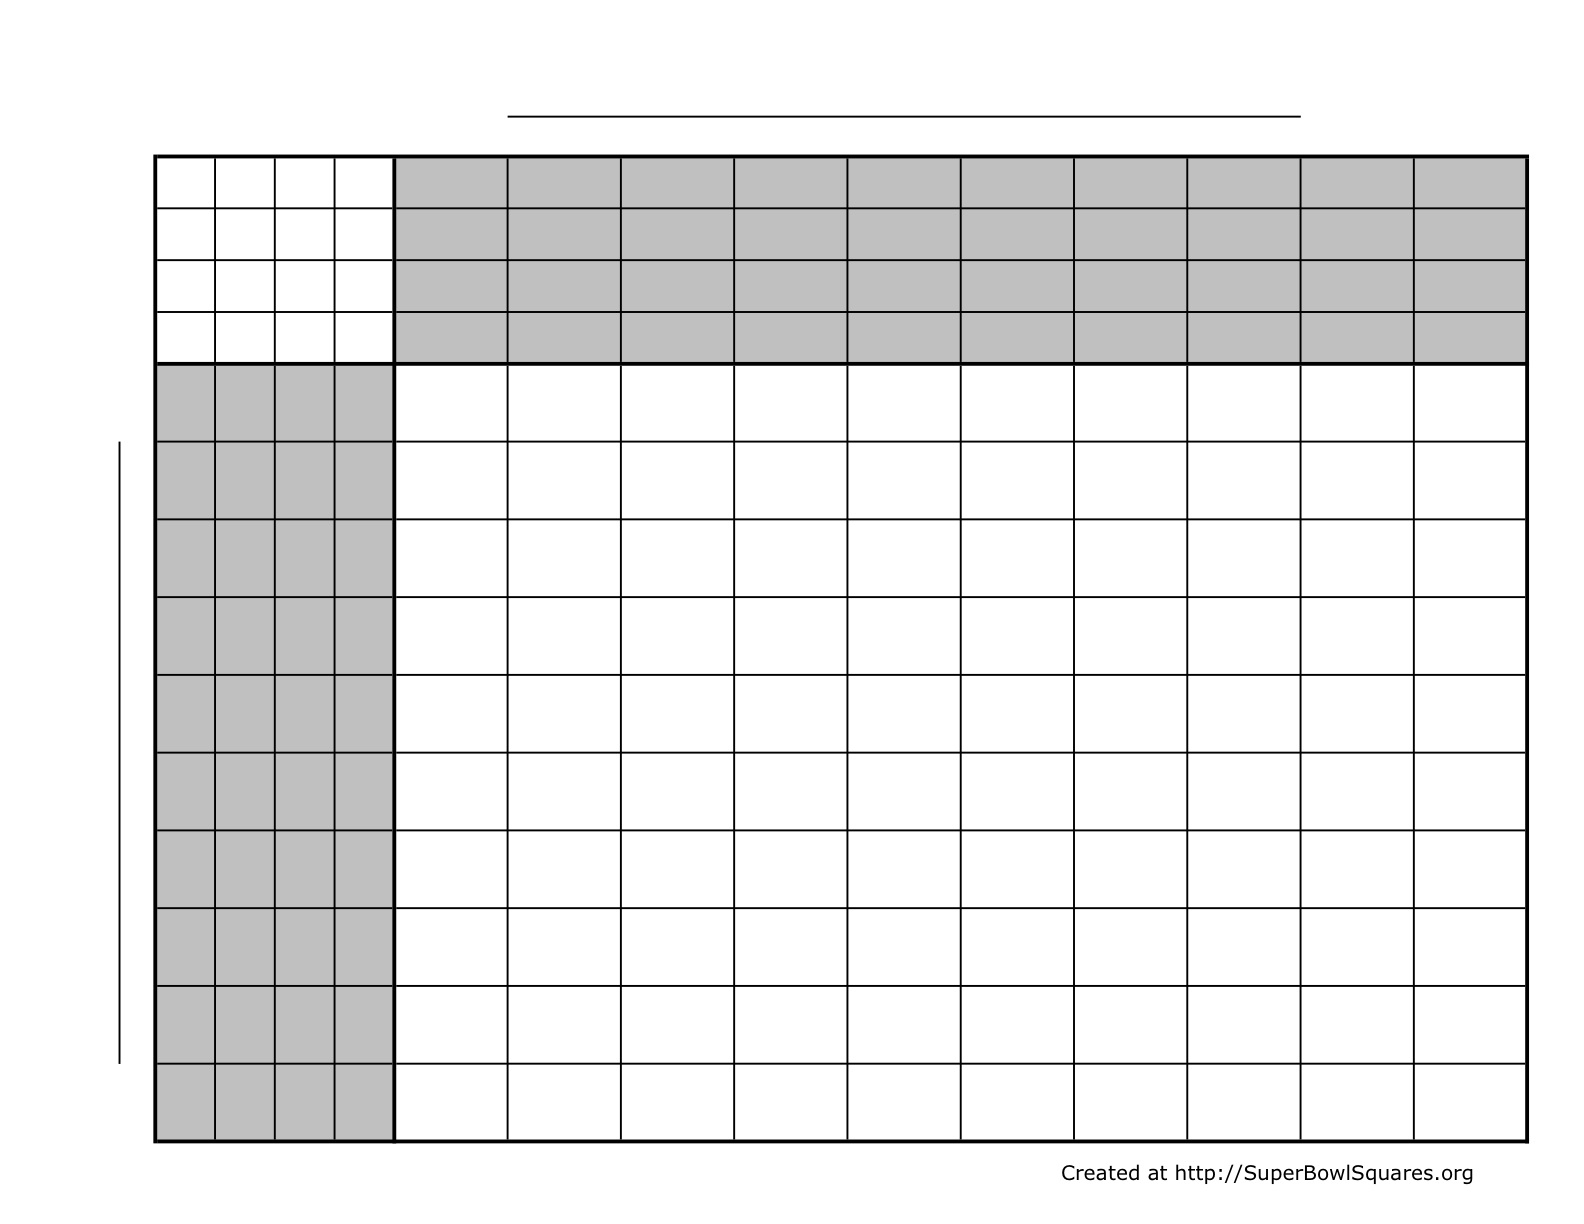 Football Squares | Super Bowl Squares | Play Football with regard to Super Bowl Pool Layout